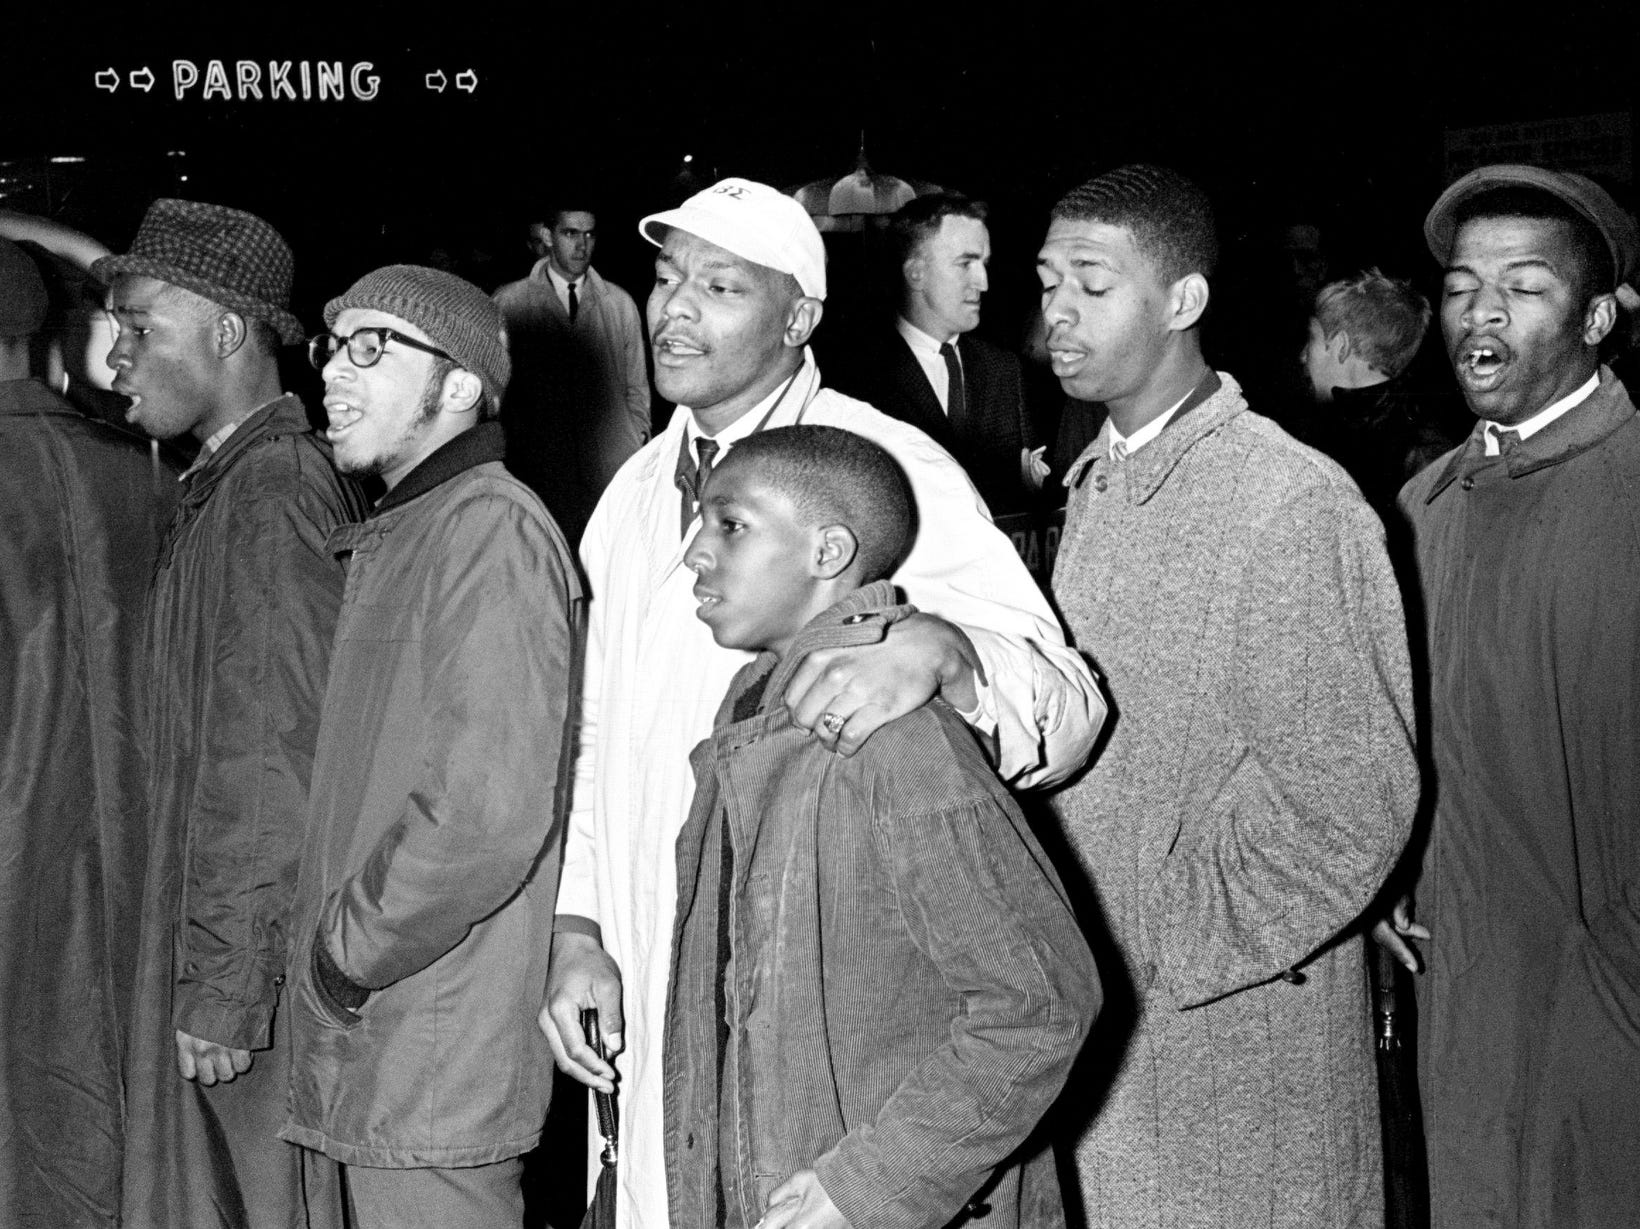 Black students begin to sing as they wait to load up in Nashville police wagons after being arrested for blocking a fire exit at the Tennessee Theater downtown Feb. 20, 1961. In the group are Lester McKinnie, center in white cap, and John Lewis, right.